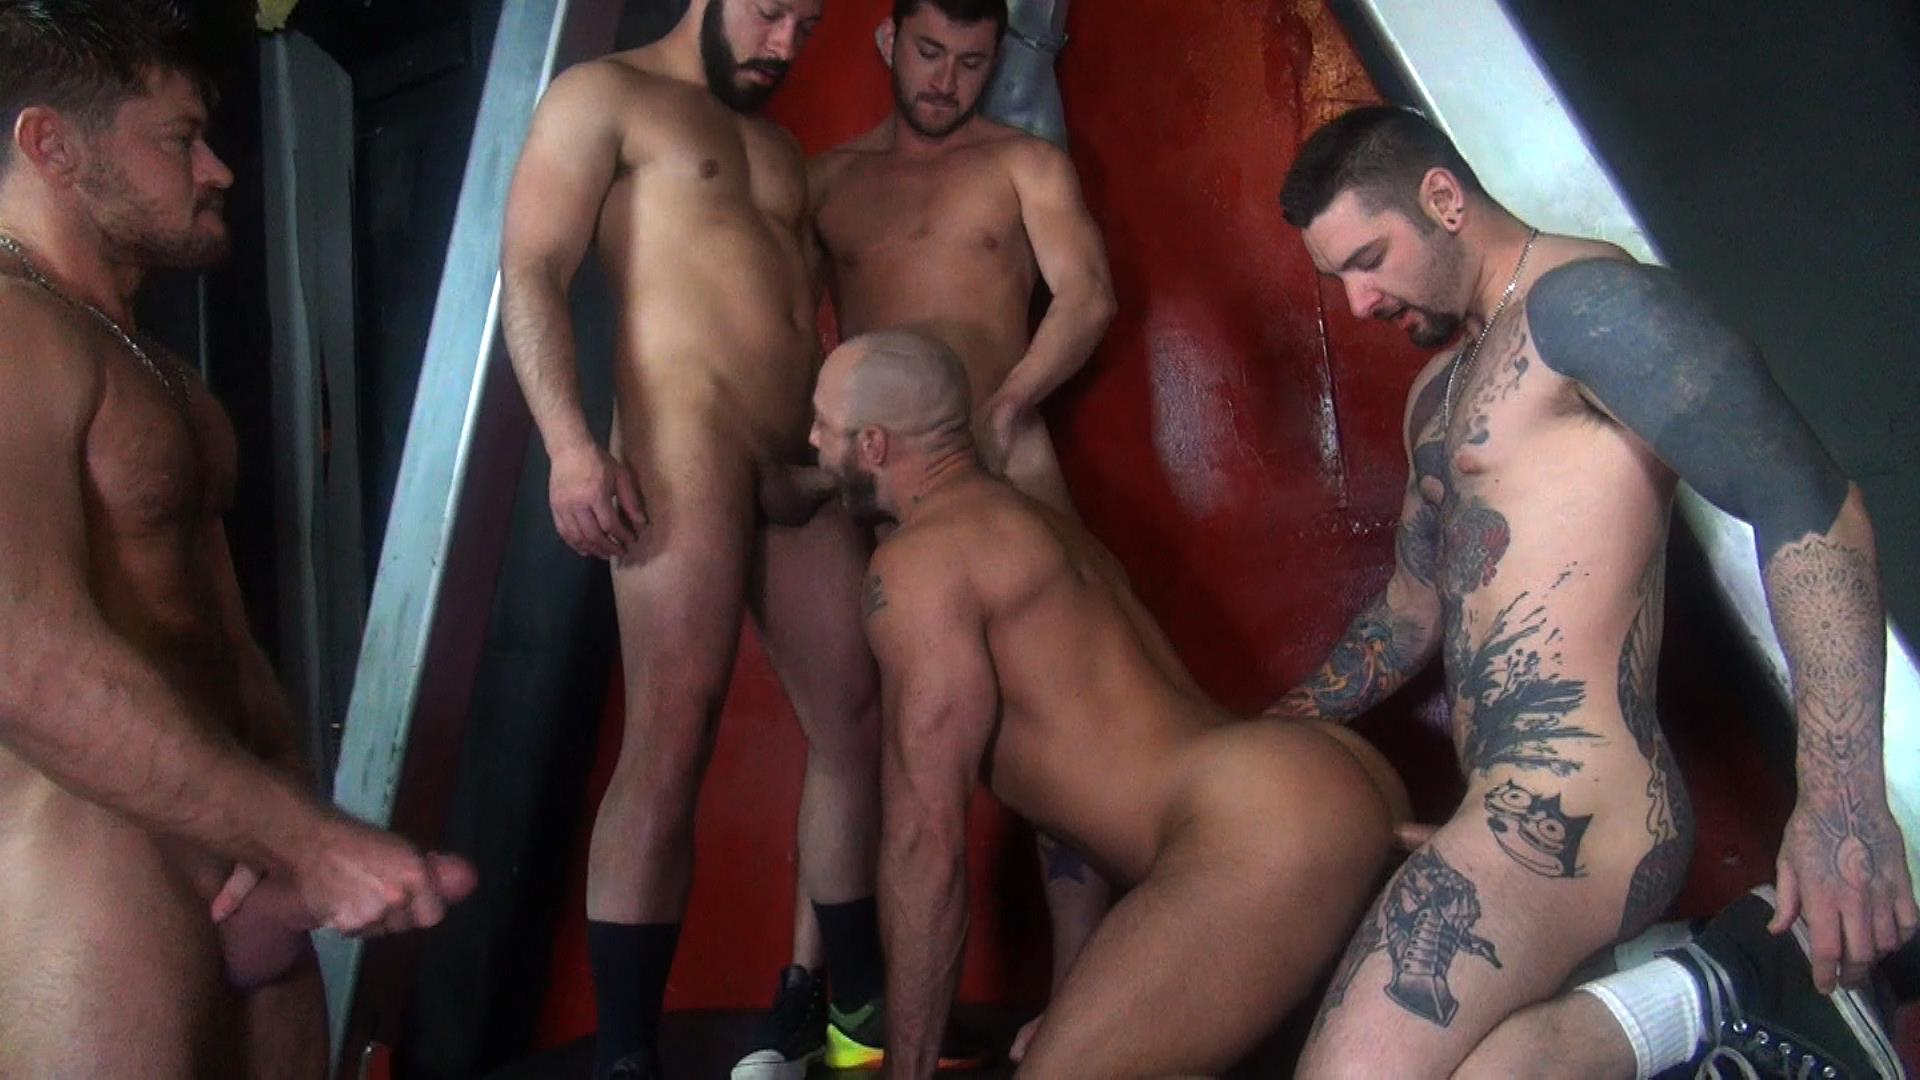 Raw-Fuck-Club-Dylan-Strokes-and-Scott-DeMarco-and-Jack-Andy-and-Jessie-Colter-and-Teddy-Bryce-Bareback-Sex-Video-08 Jessie Colter's First Bareback Gangbang At A Sleazy Bathhouse